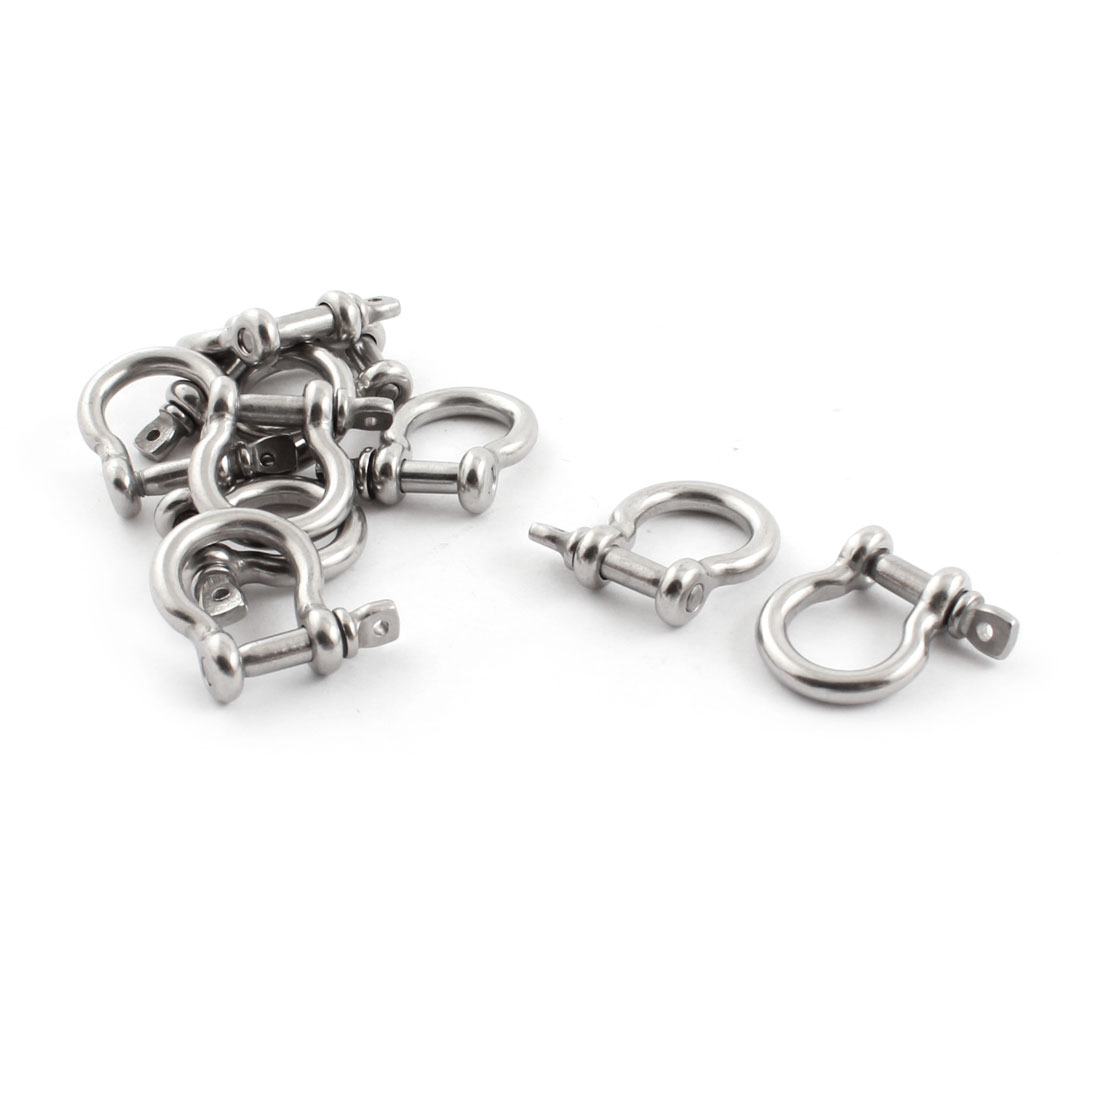 10PCS Silver Tone Stainless Steel Fastener Bow Shackles for 4mm 5/32 Inch Wire Rope